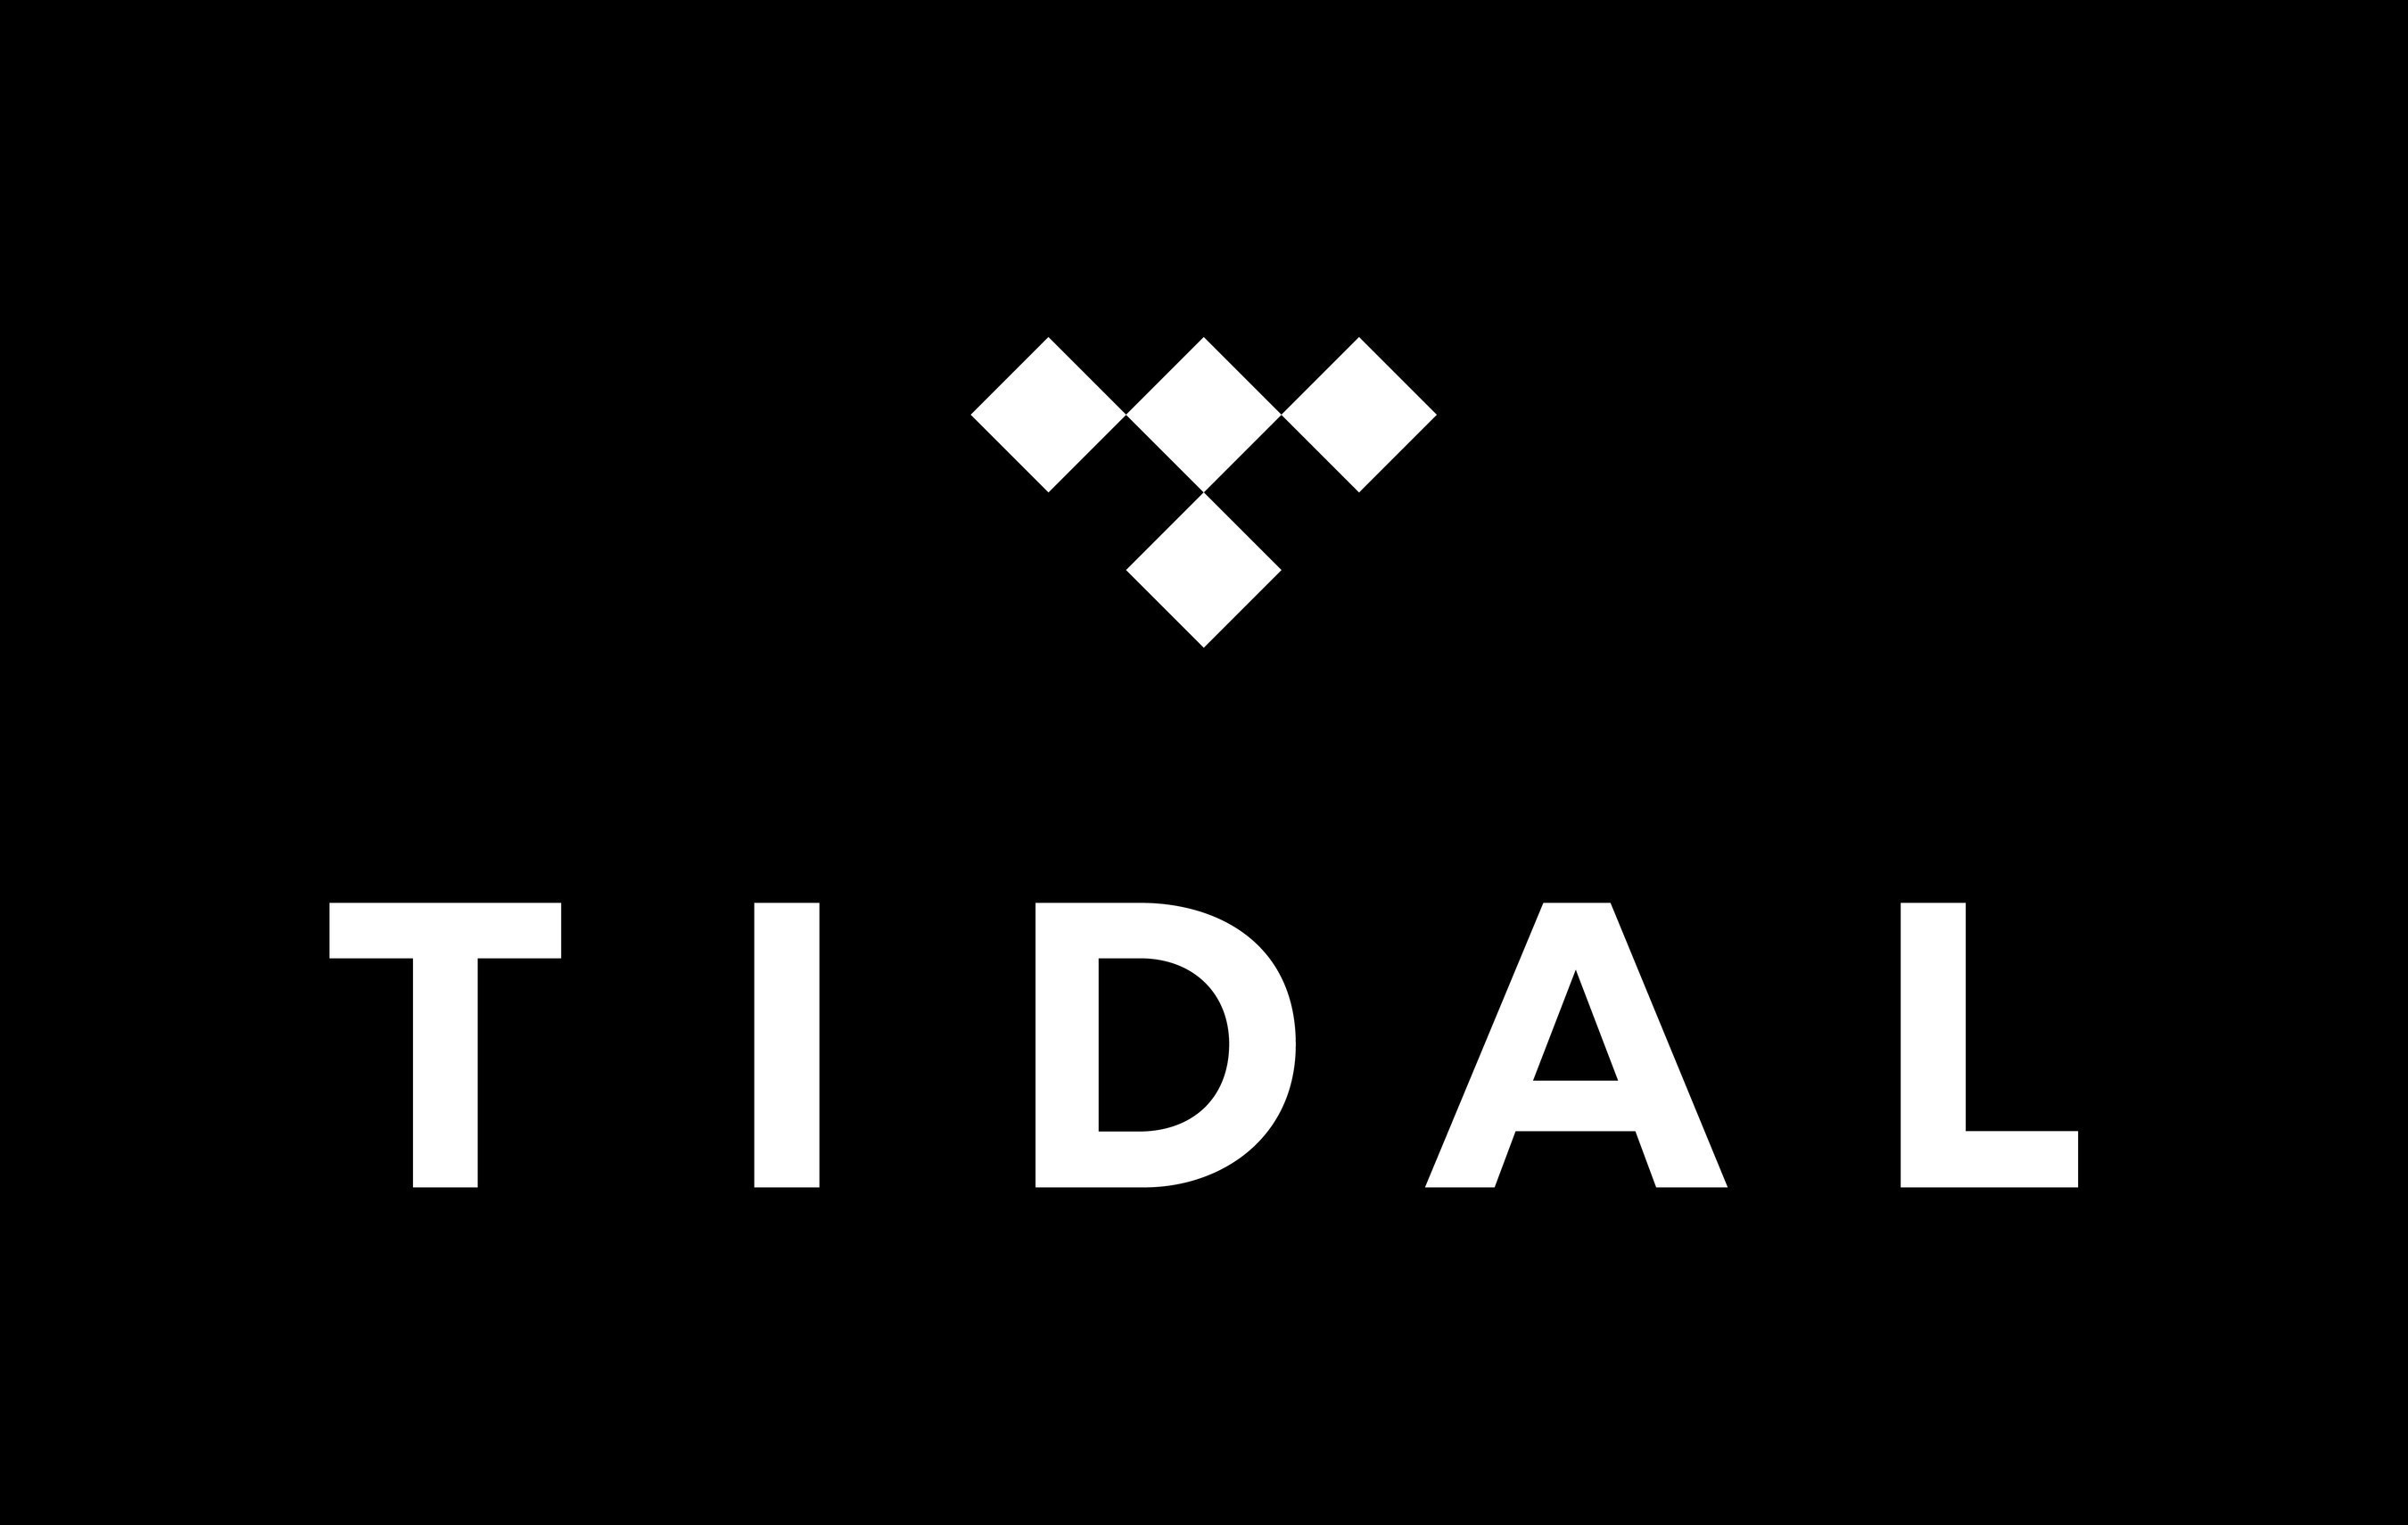 TIDAL, the first high fidelity music streaming service with HD music videos and curated editorial, launches in the U.S. and UK this fall. Visit the TIDAL website at  www.tidalhifi.com . (PRNewsFoto/TIDAL) (PRNewsFoto/TIDAL)